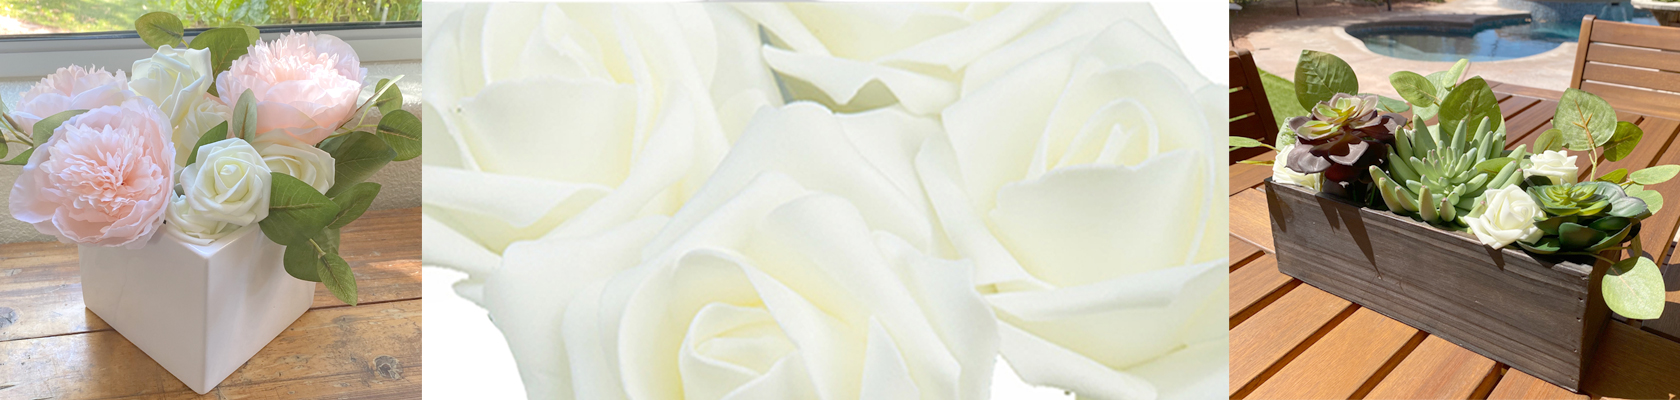 Foam Decorative Flowers - ShopWildThings